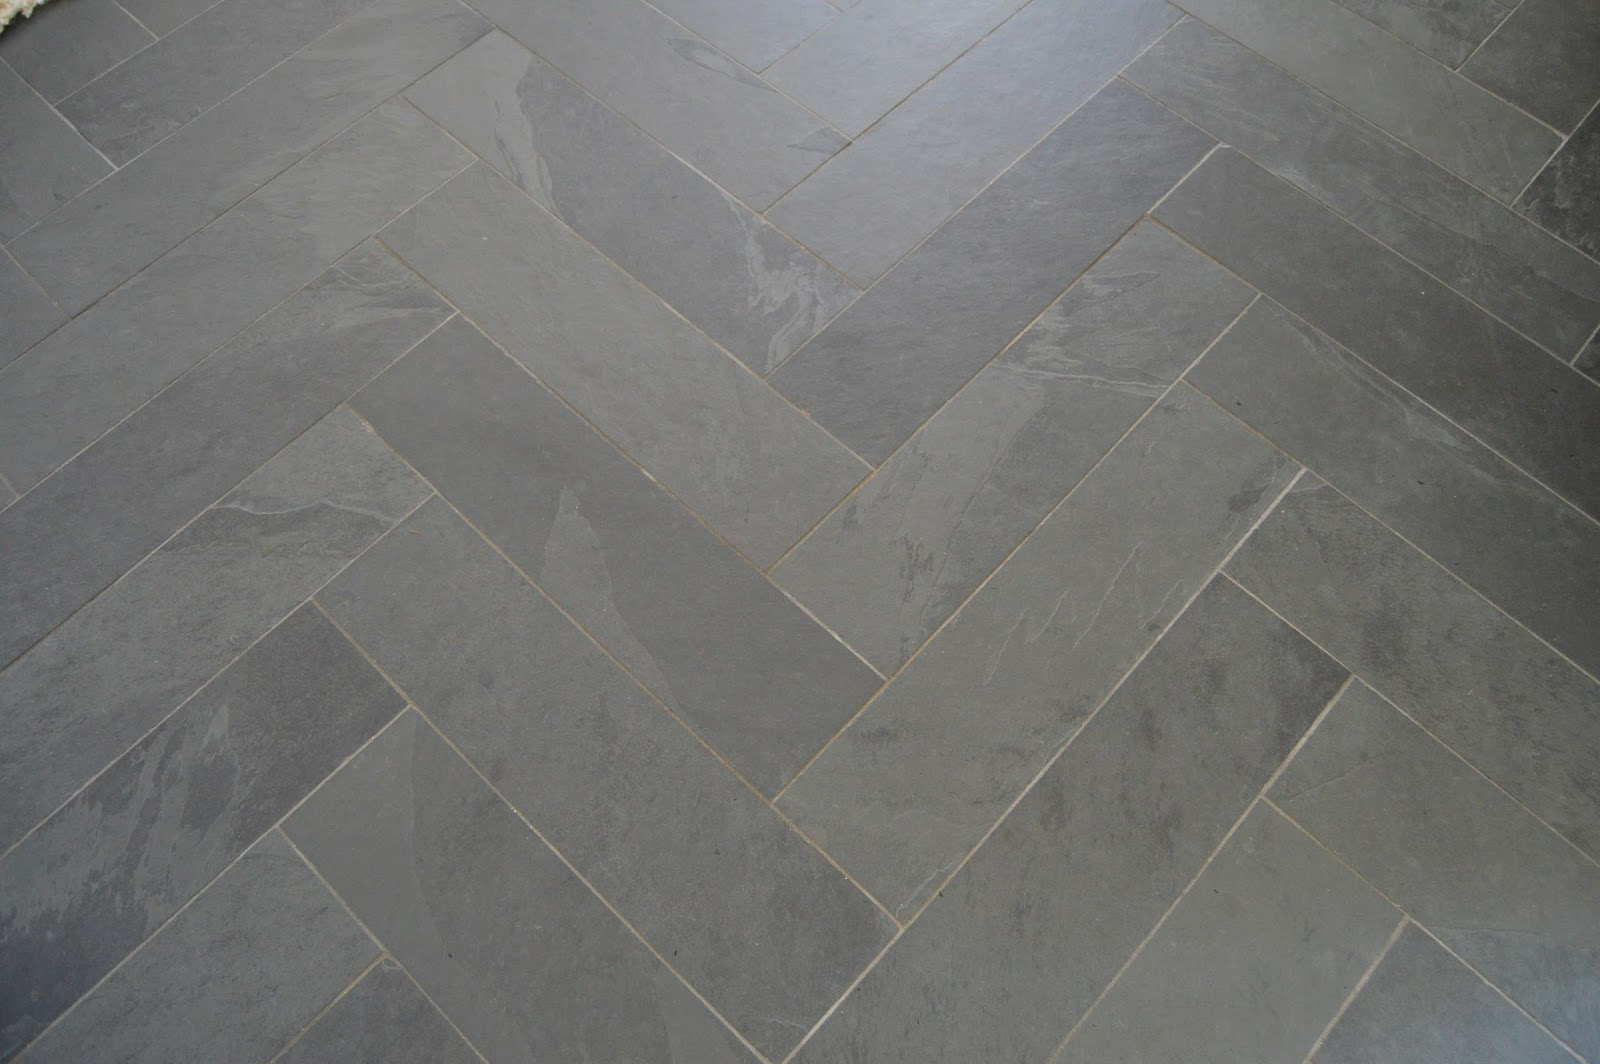 House Dash Home Herringbone And Tile Sickness